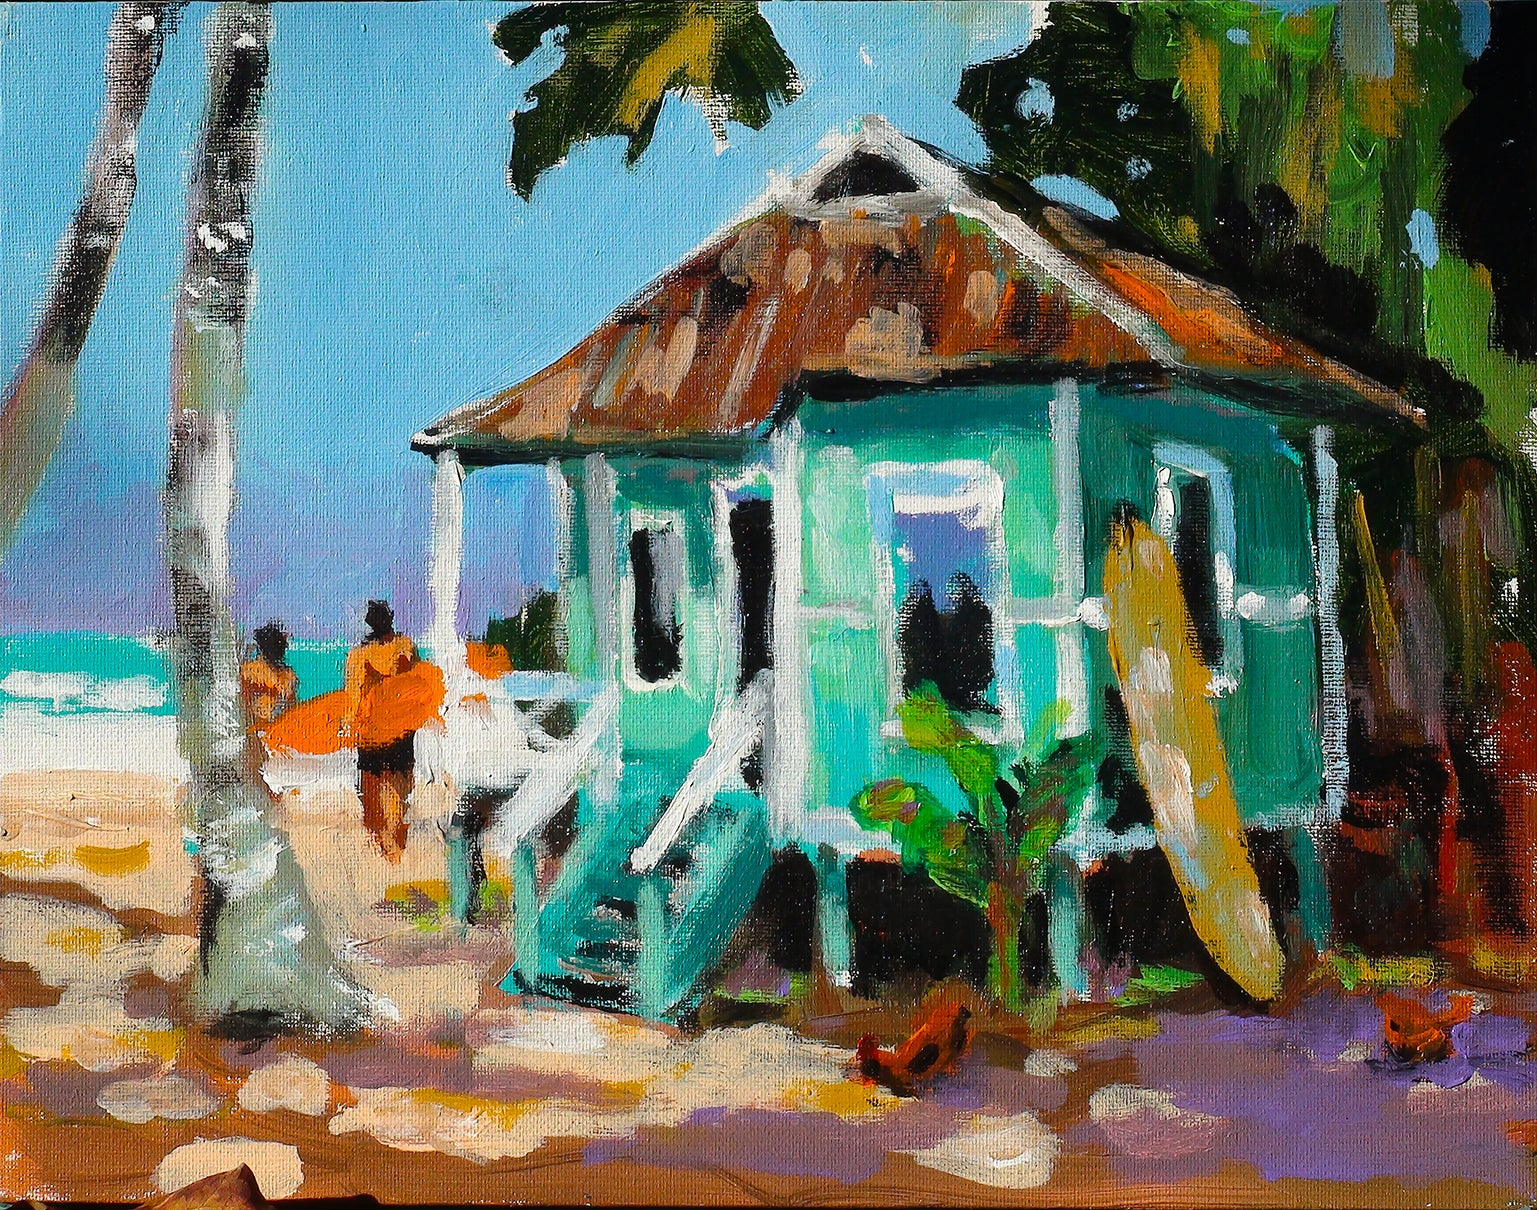 Image of Shell shack